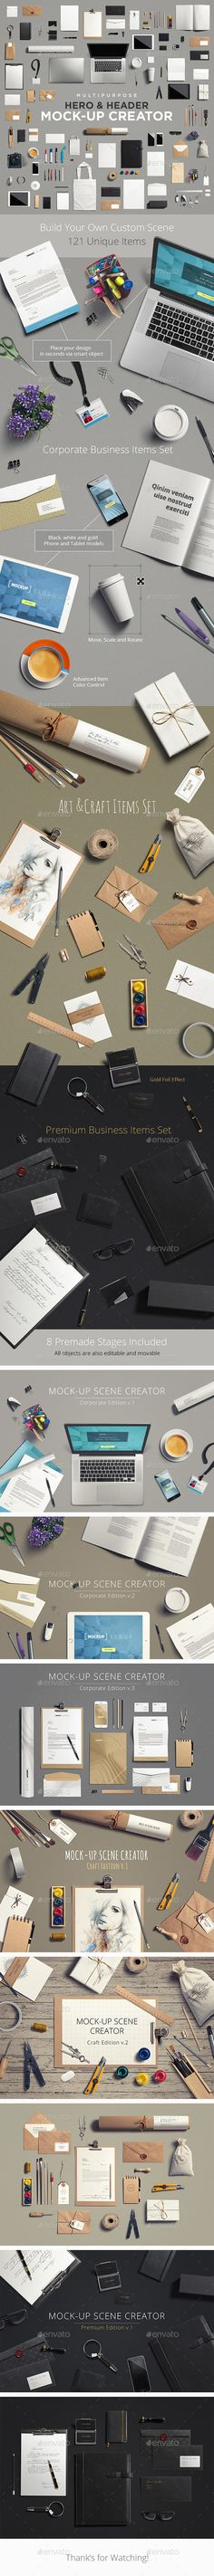 Multipurpose Mock-Up Creator (Stationery)